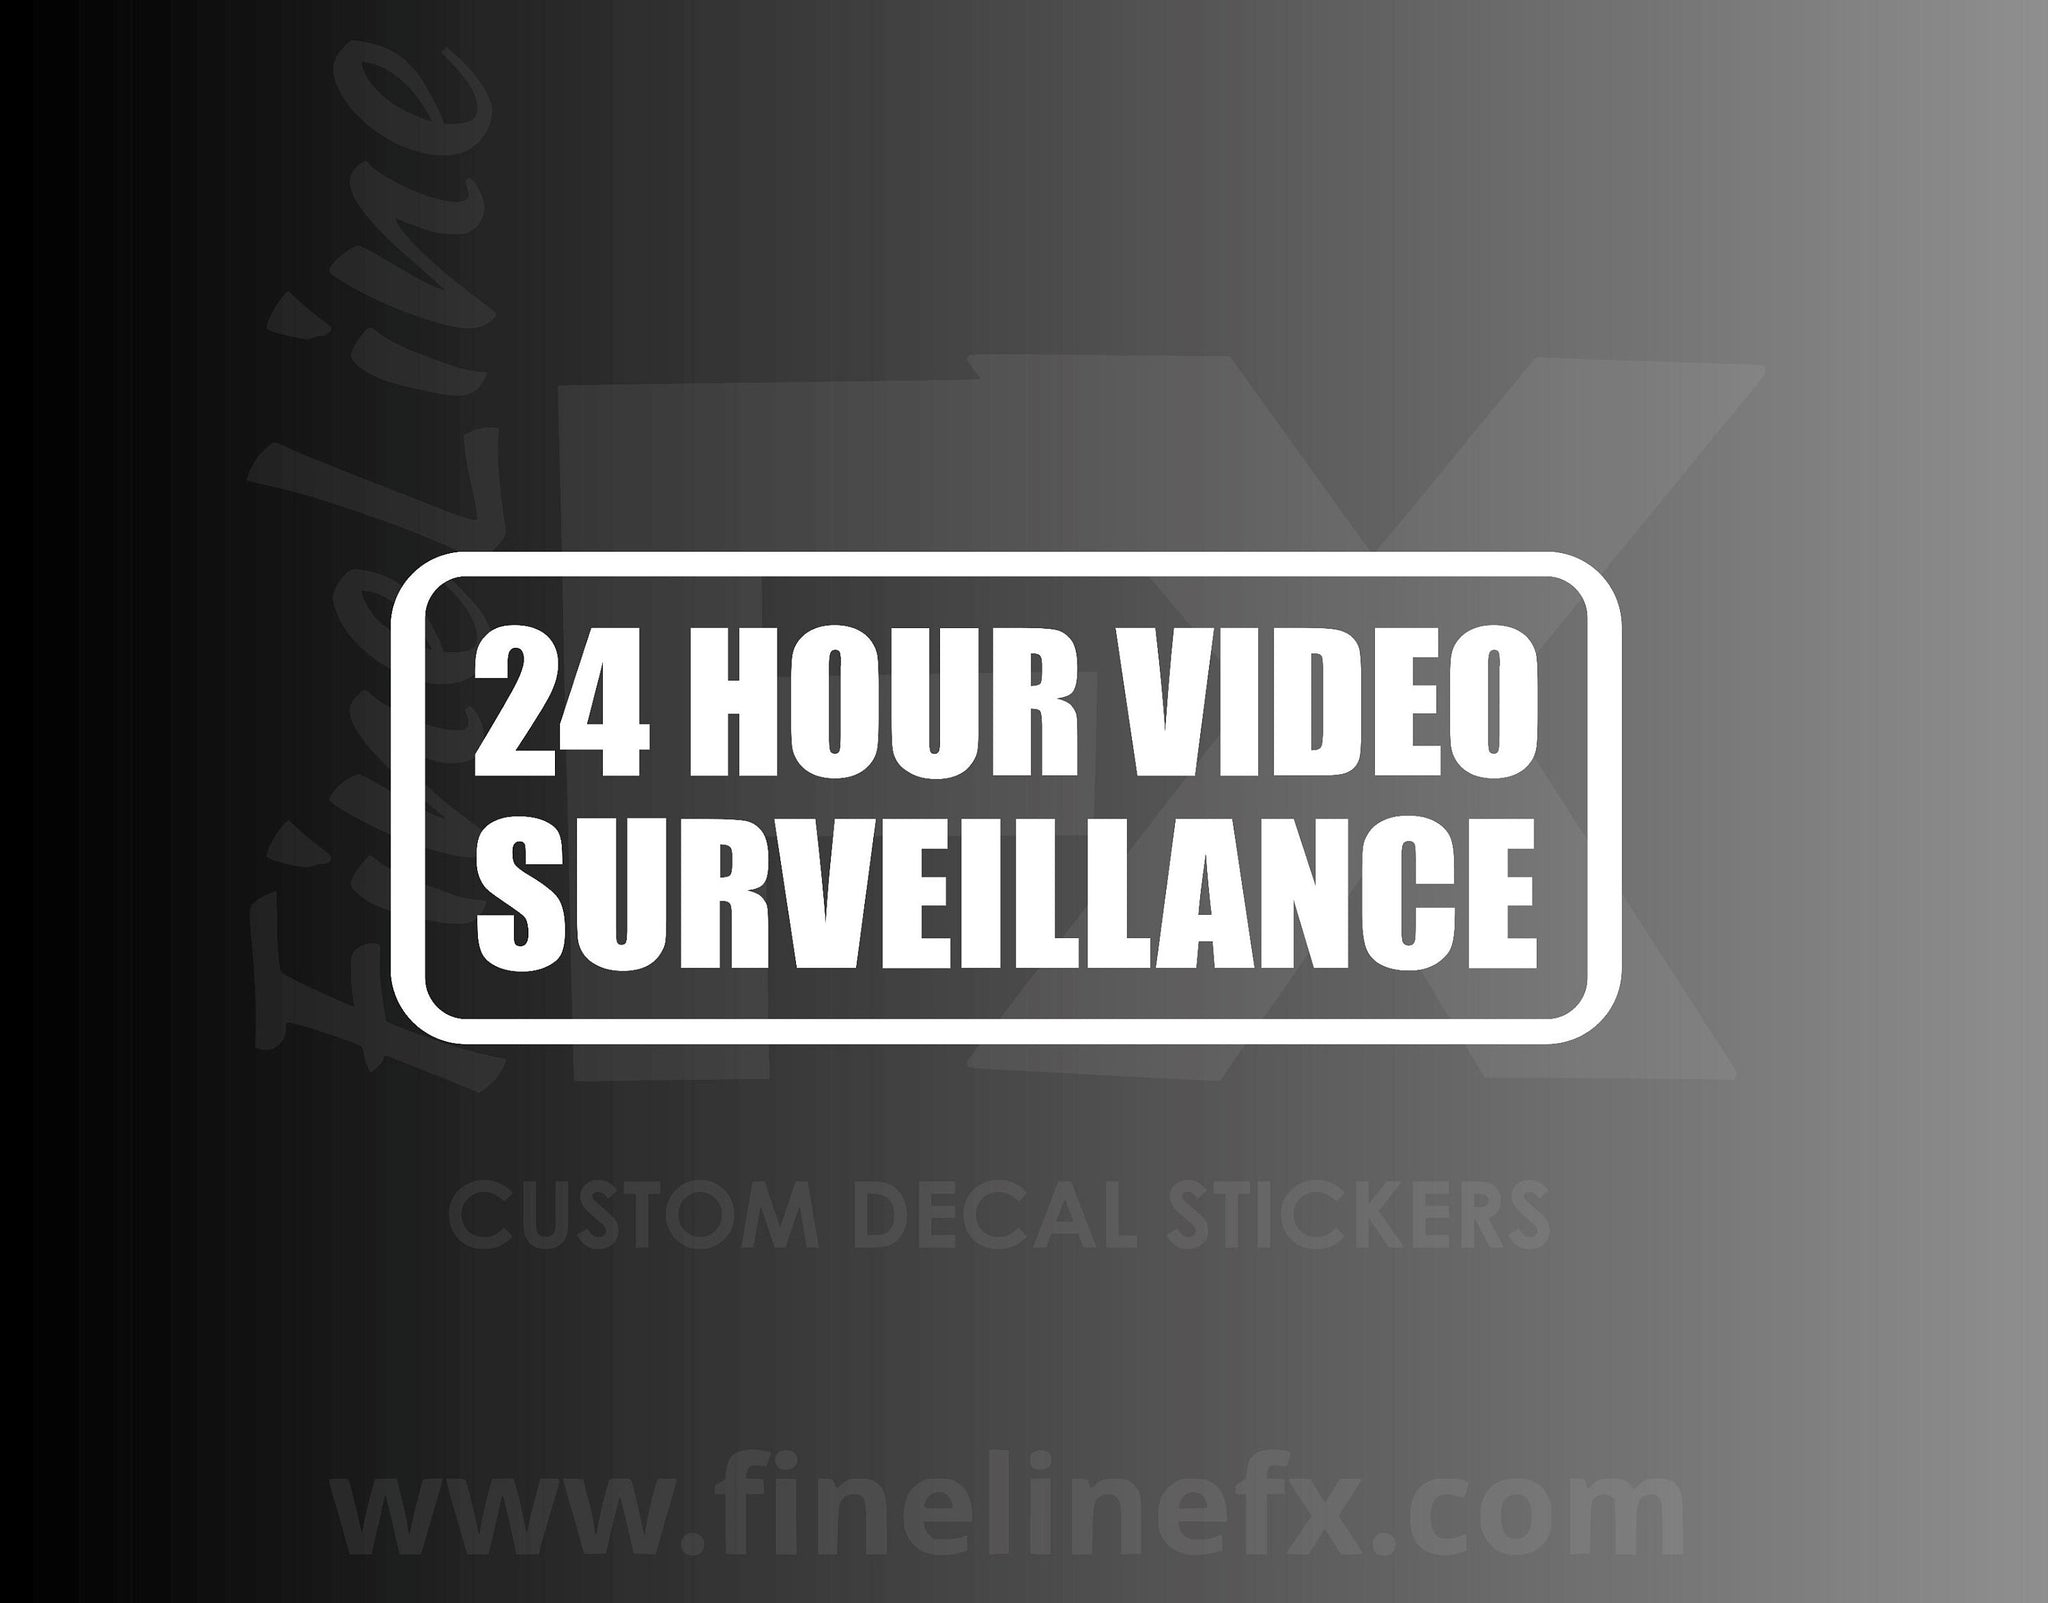 24 Hour Video Surveillance, Home and Business Security Vinyl Decal Sticker